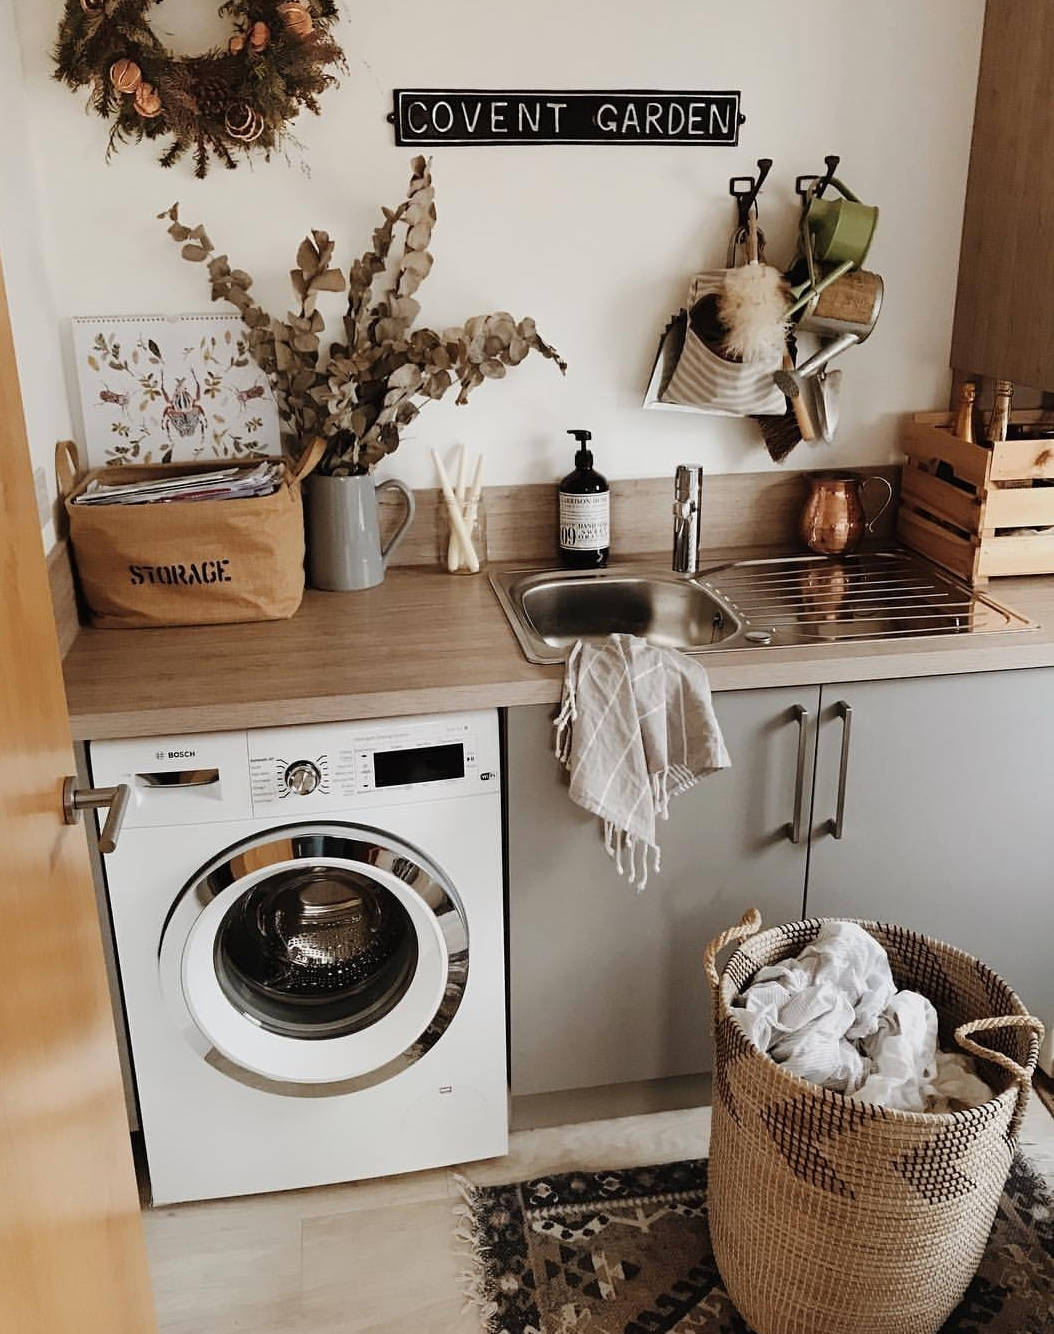 The utility room of my dreams in the home of @thislittlehouse